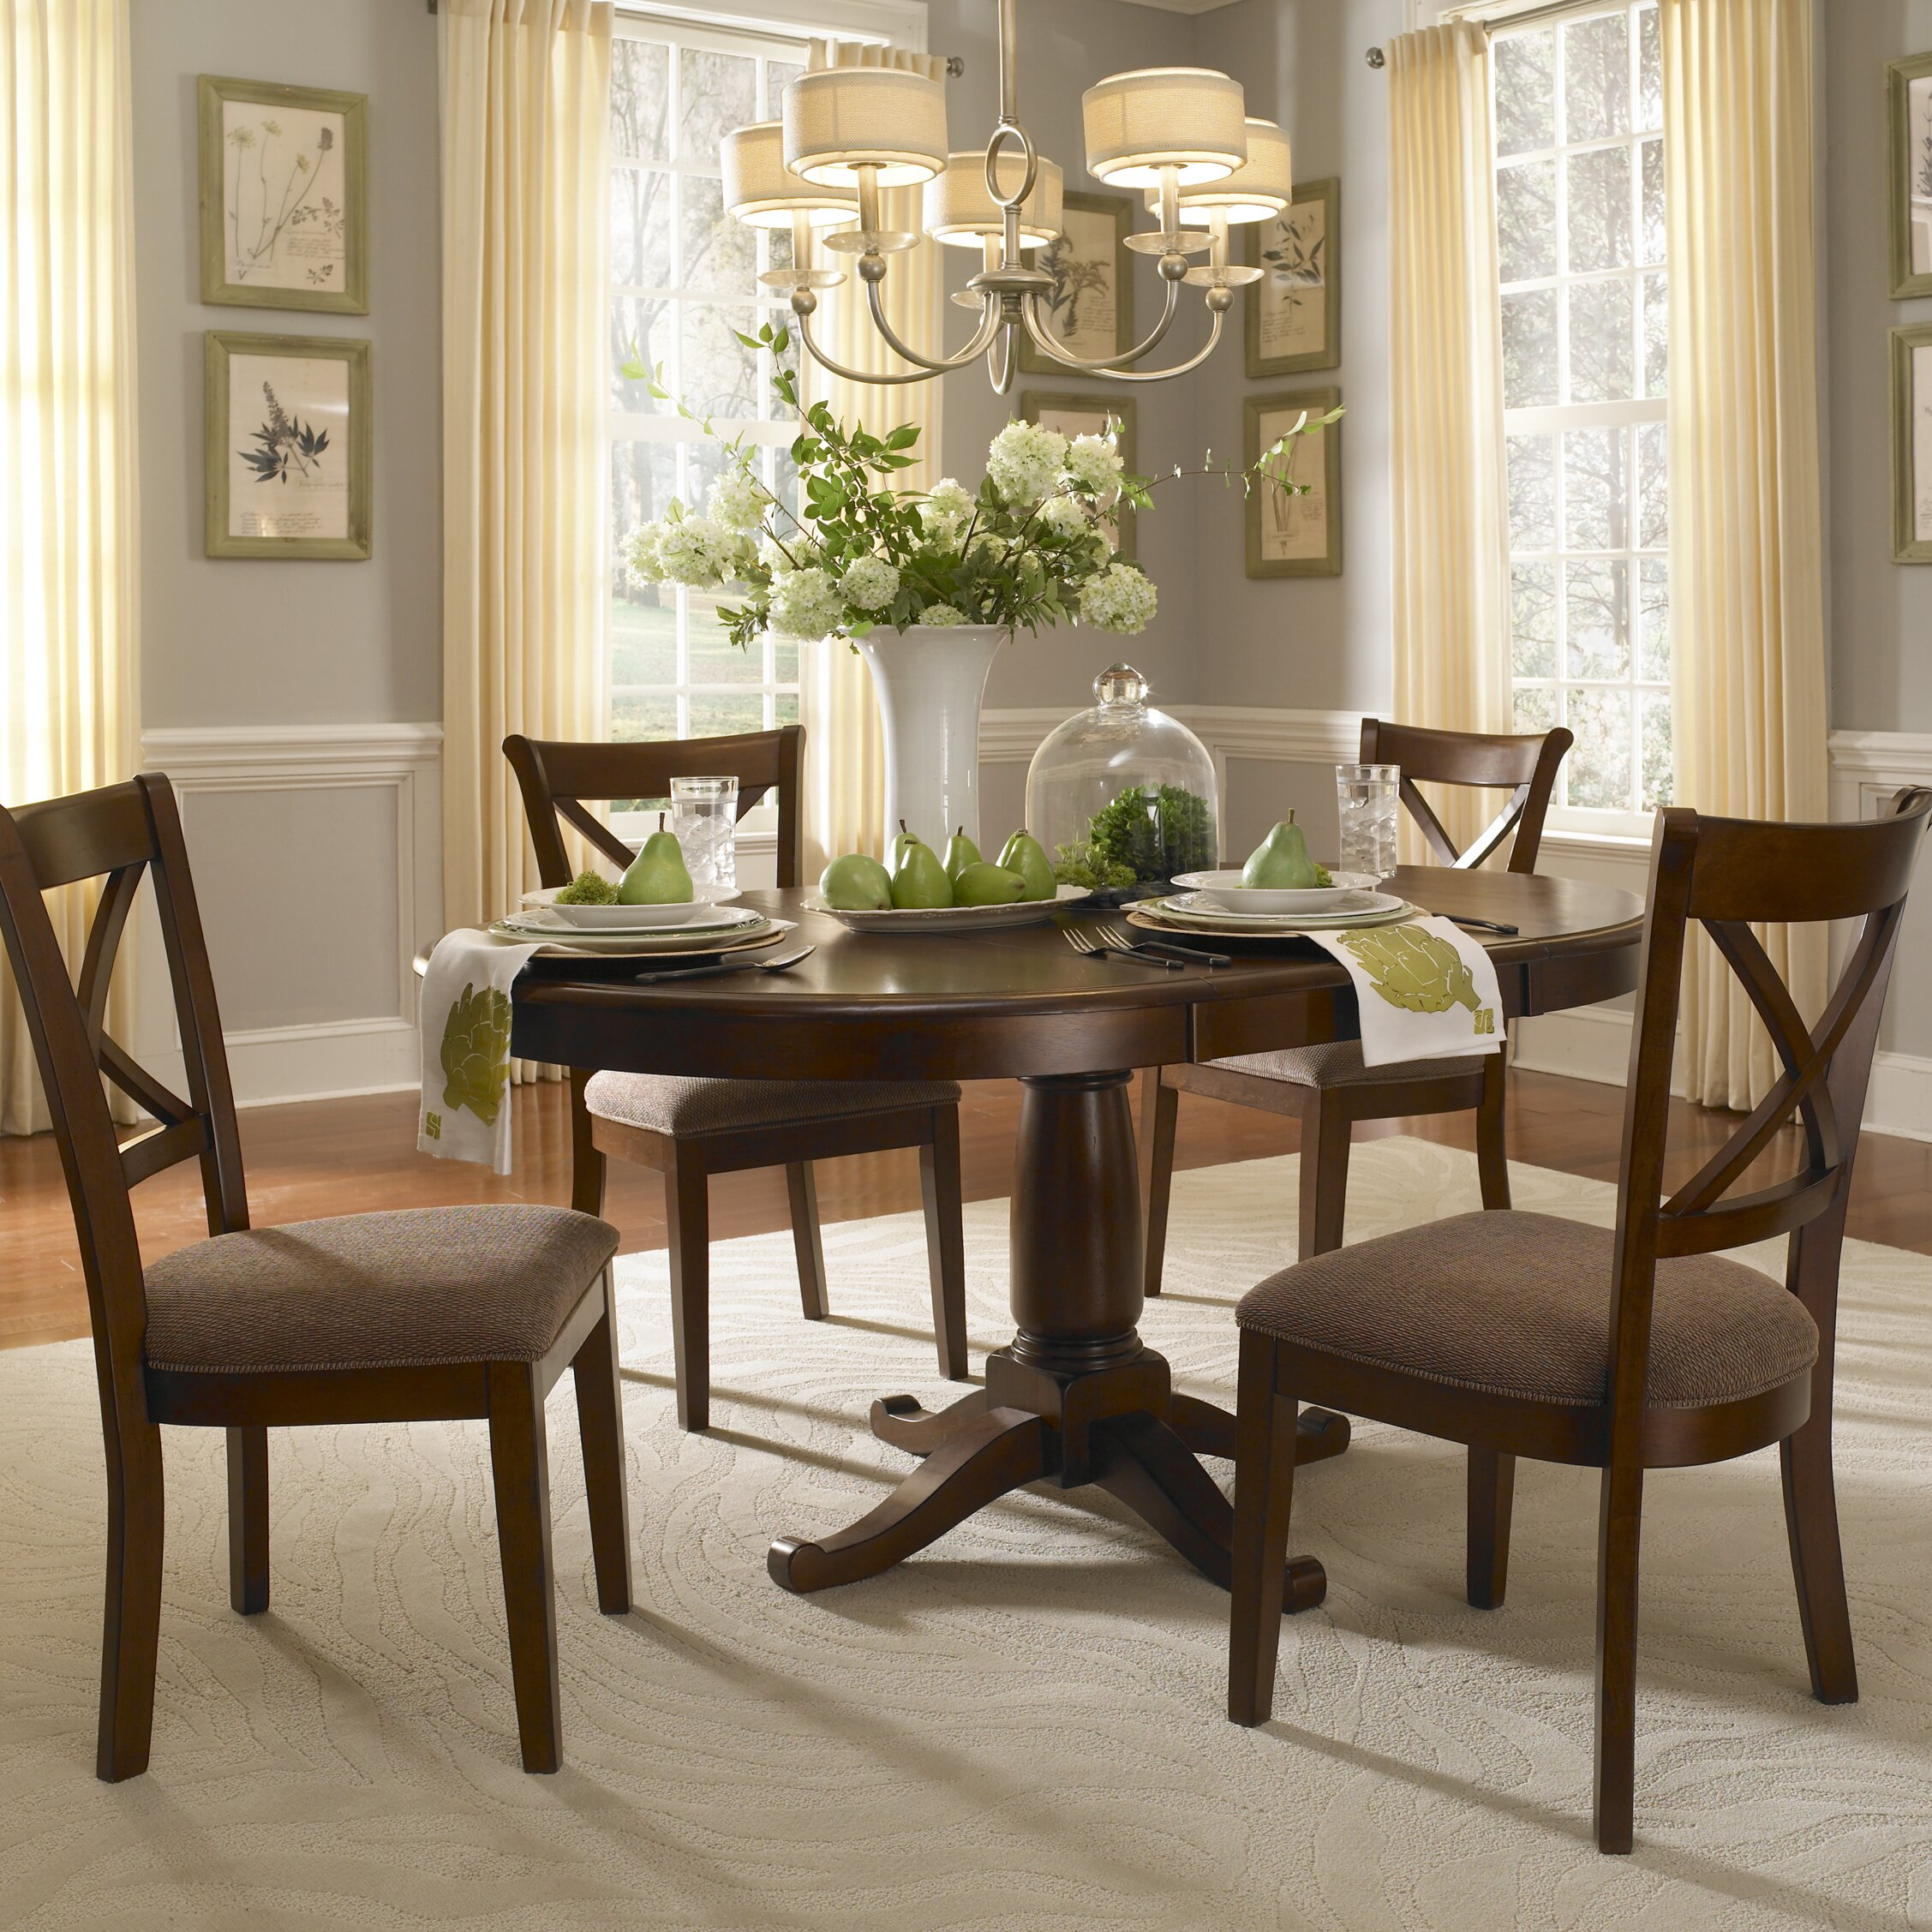 Dining Room Tables: A-America Desoto Extendable Dining Table & Reviews